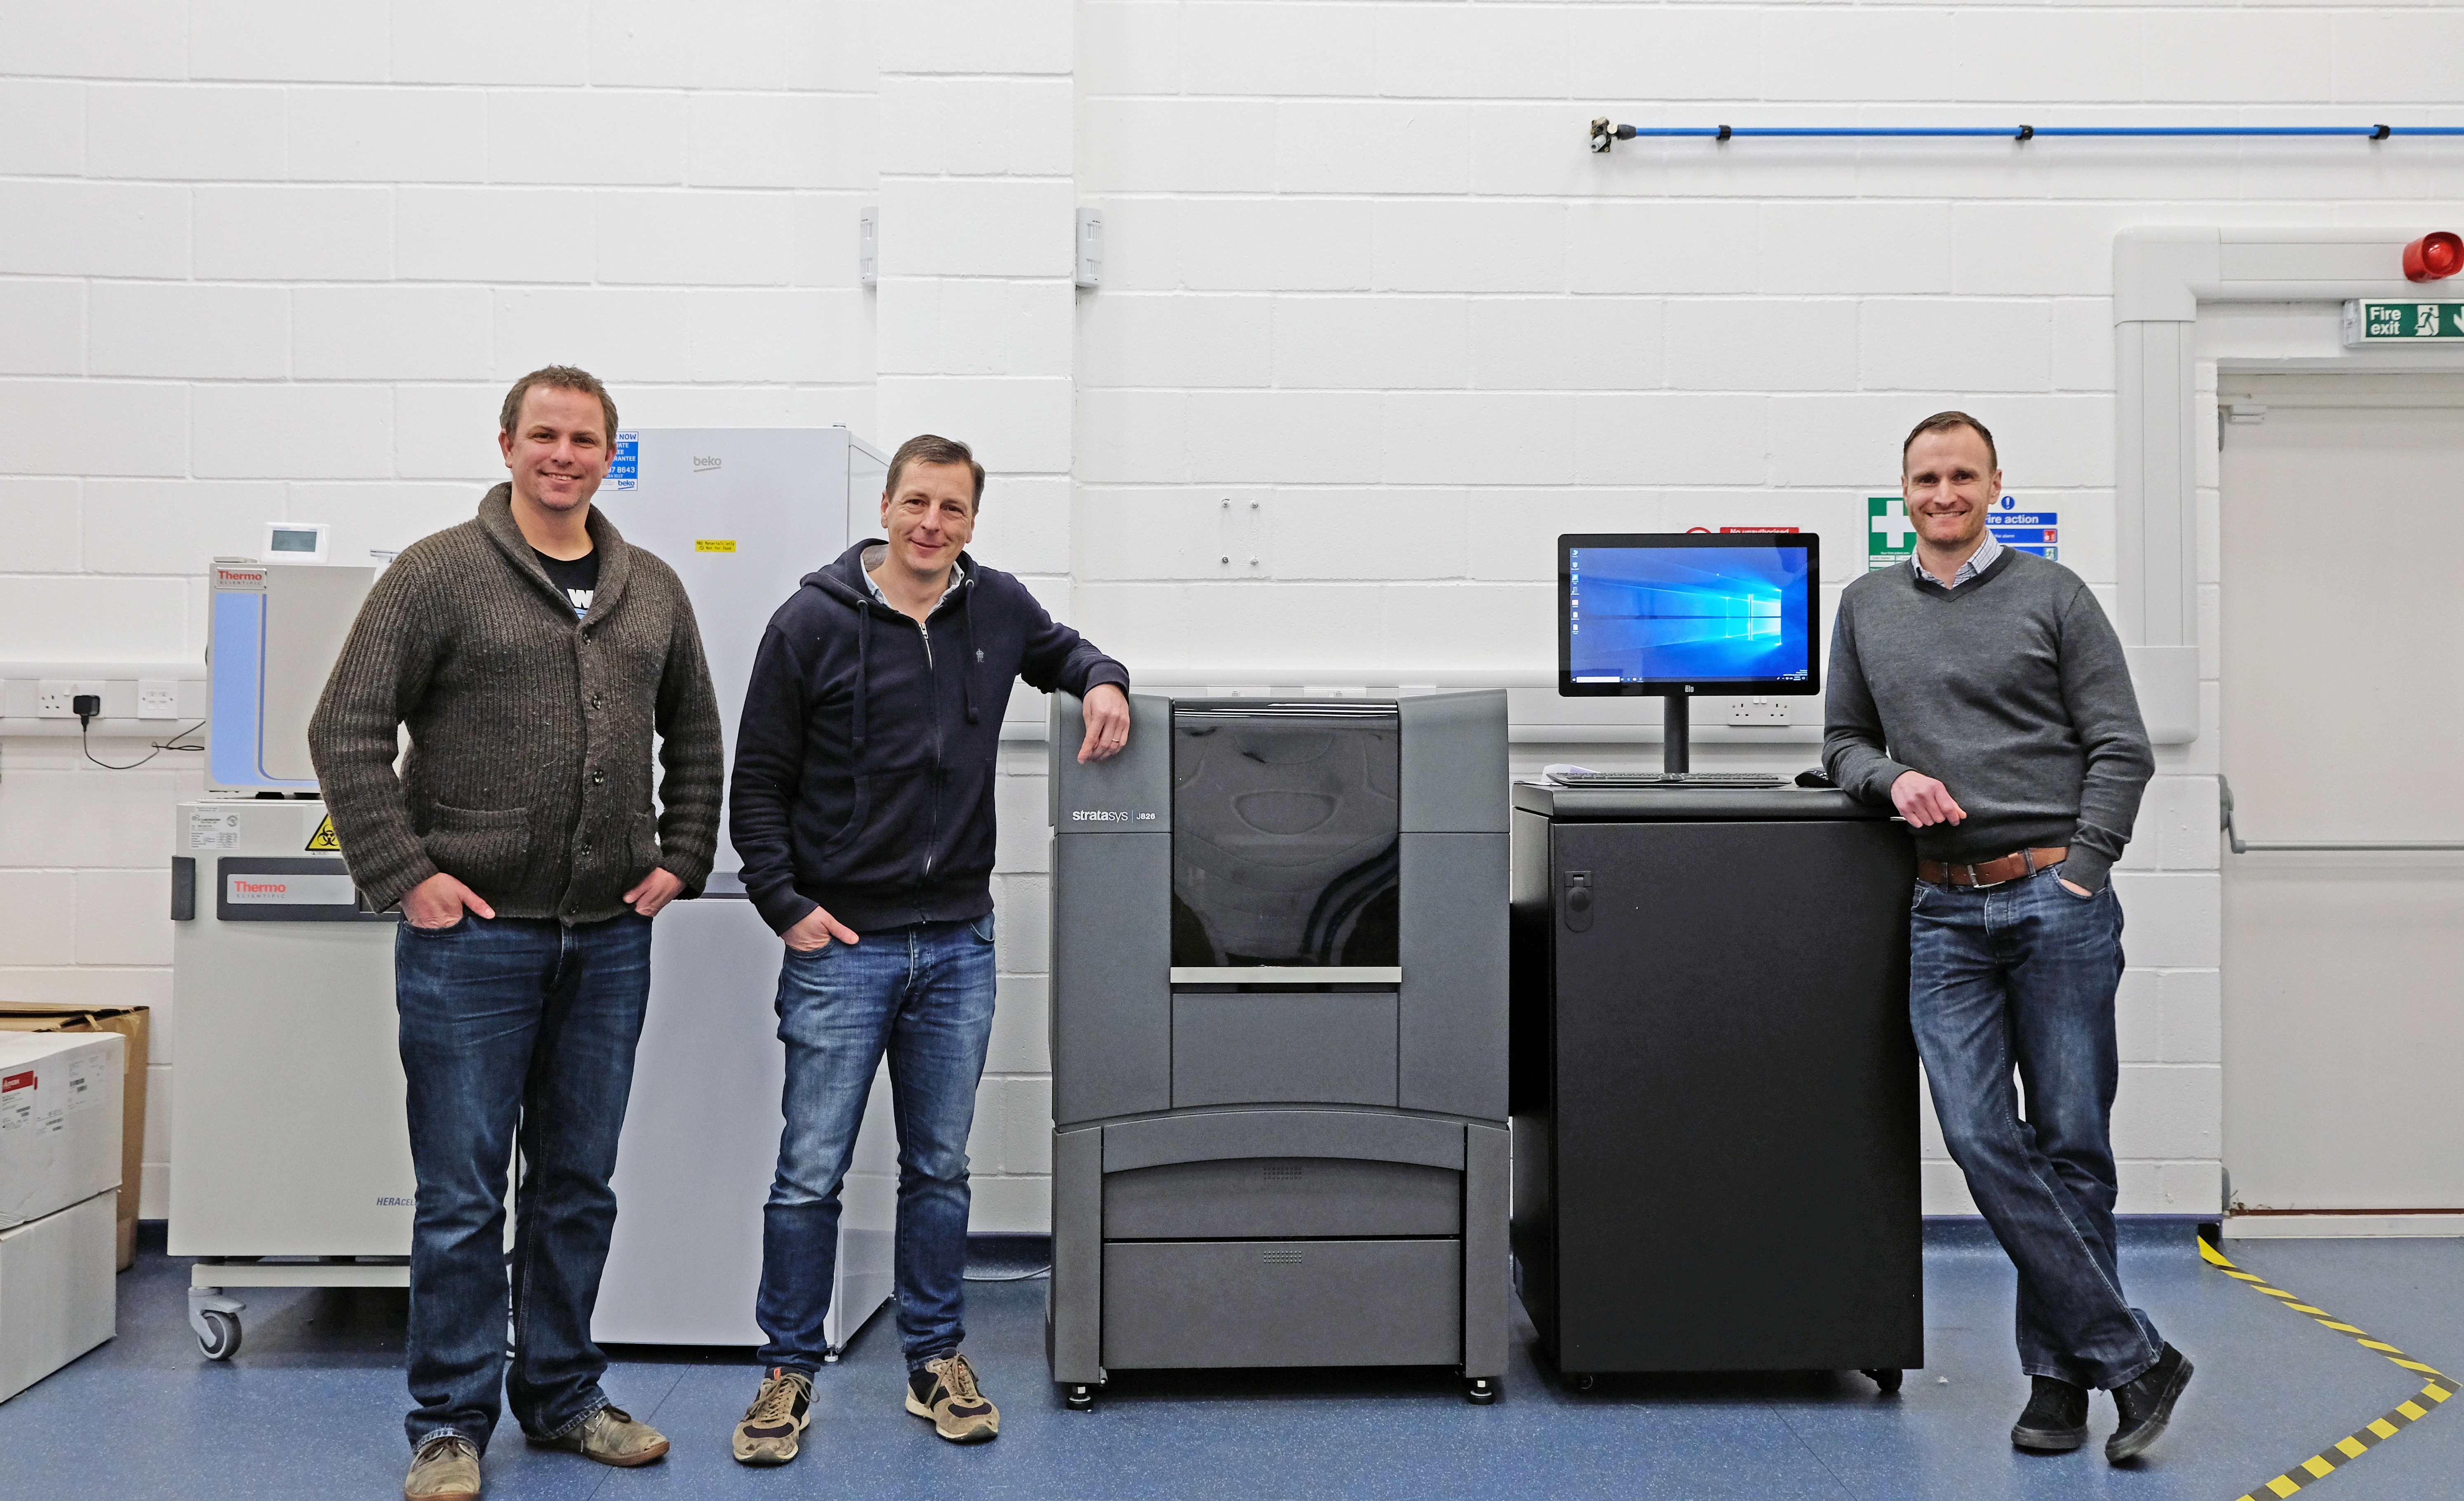 From left: Dr Colin Barker, Richard Vellacott and Nick Rollings. Photo via Stratasys.